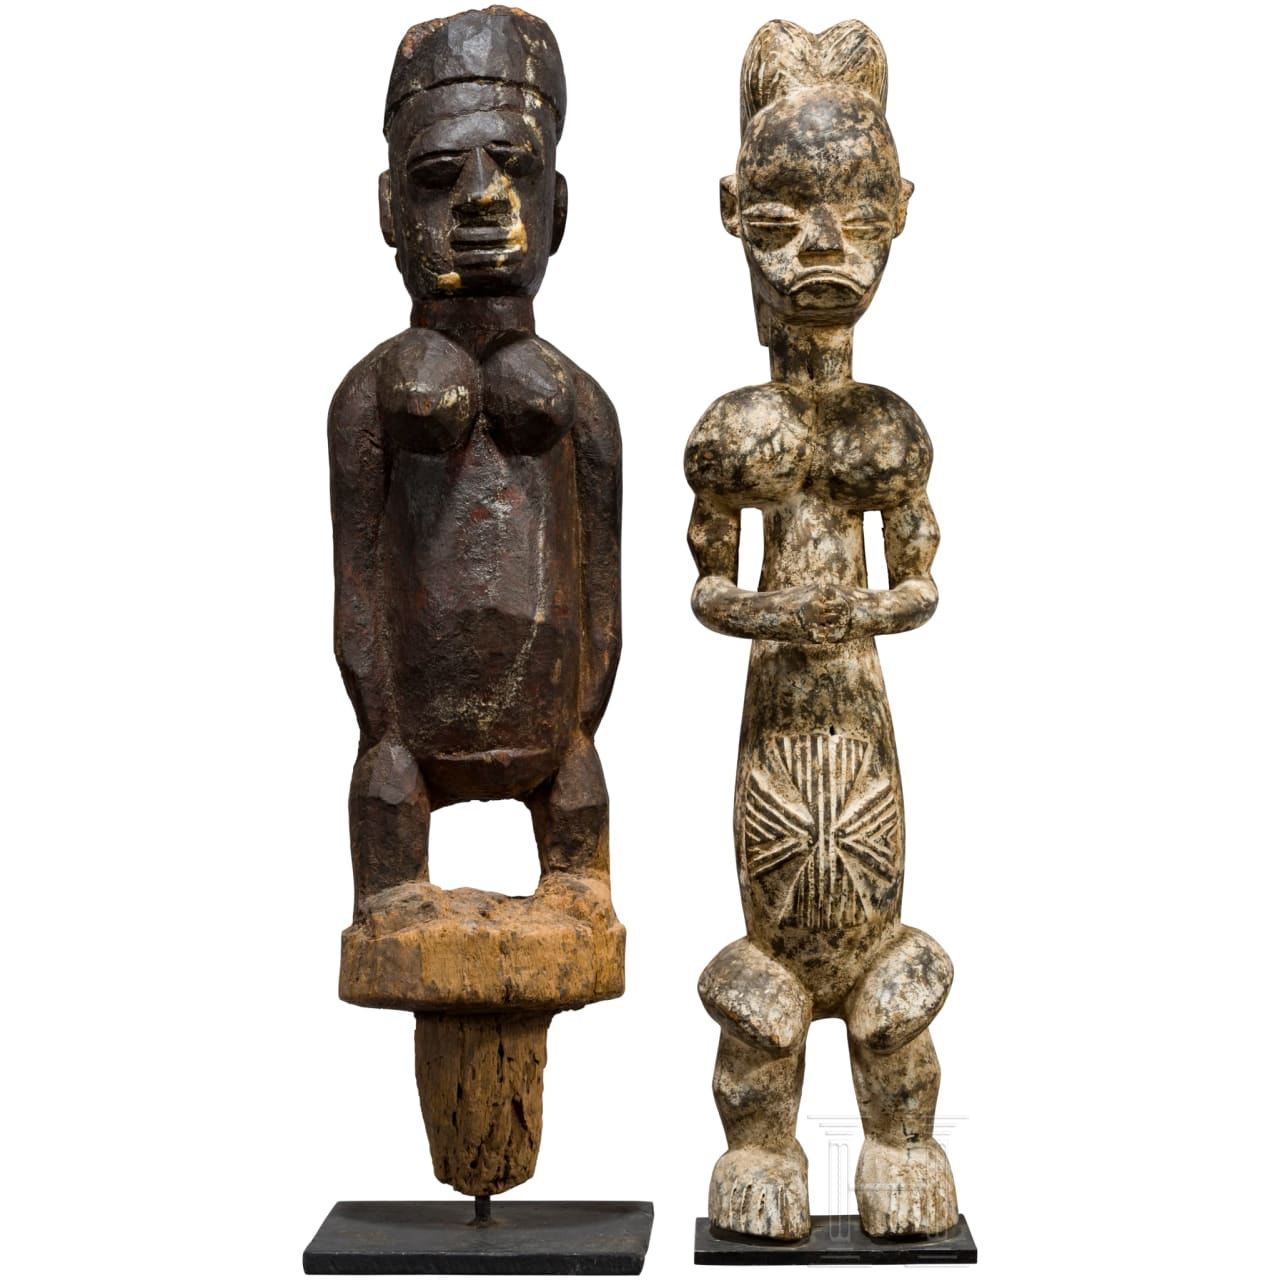 Two large African figures